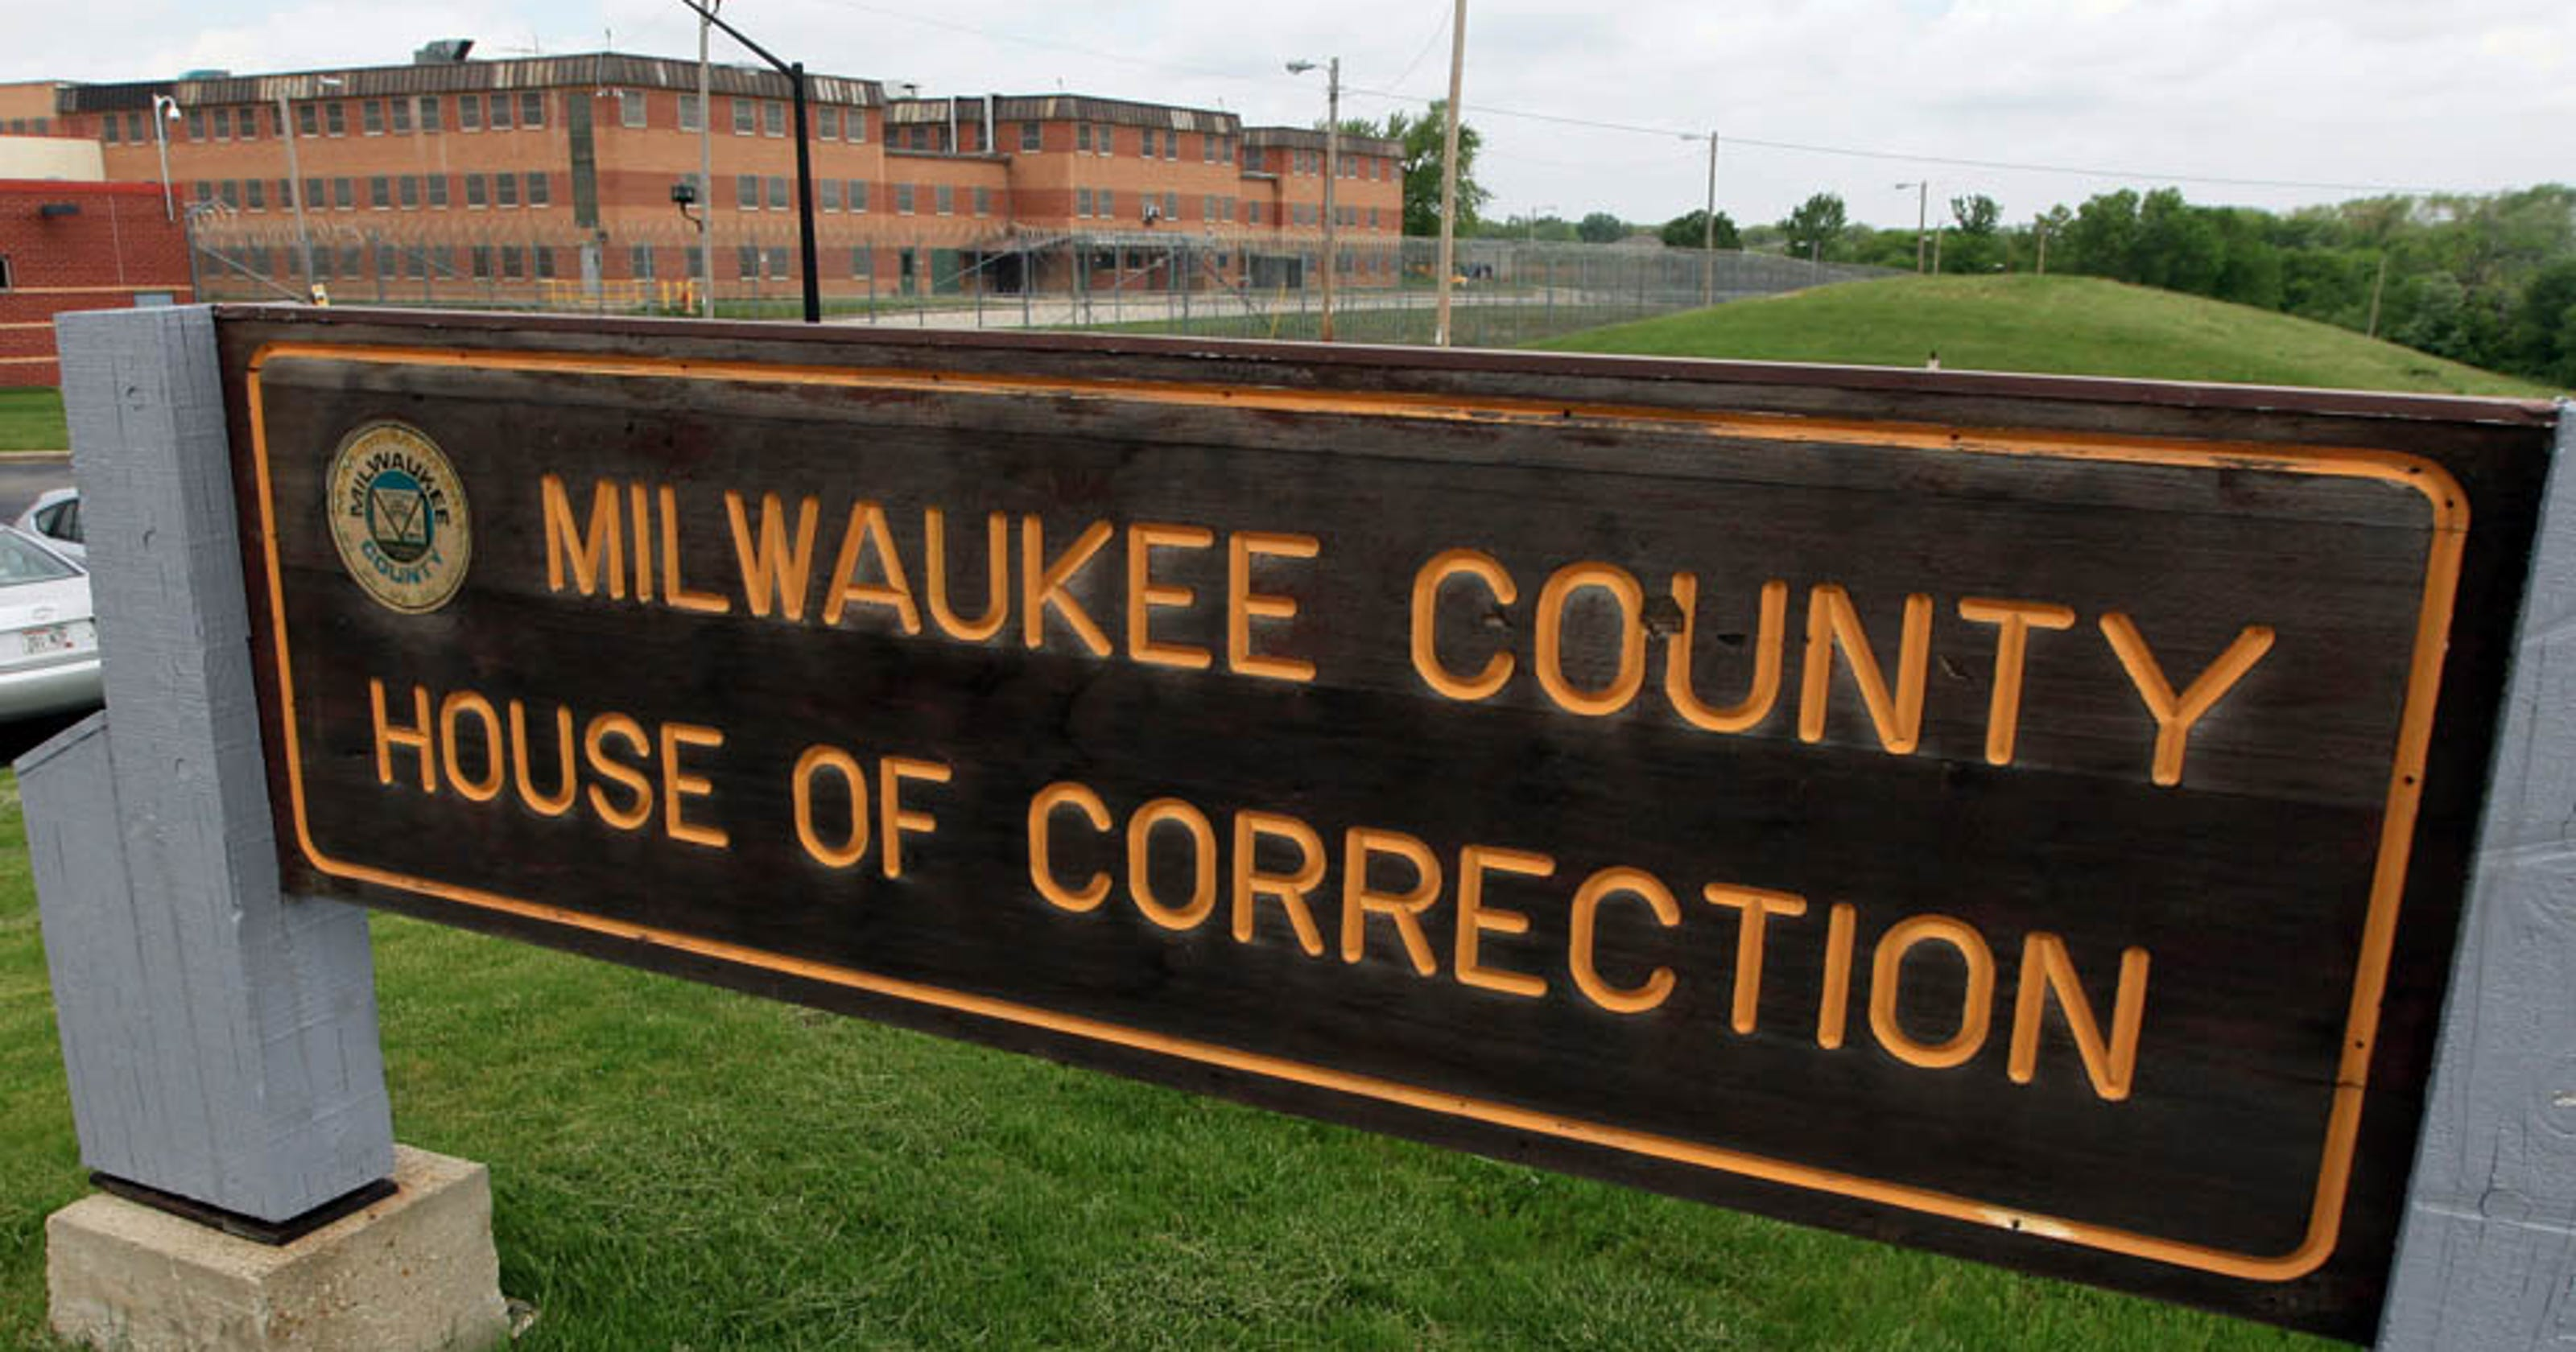 Inmate dies at Milwaukee County House of Correction